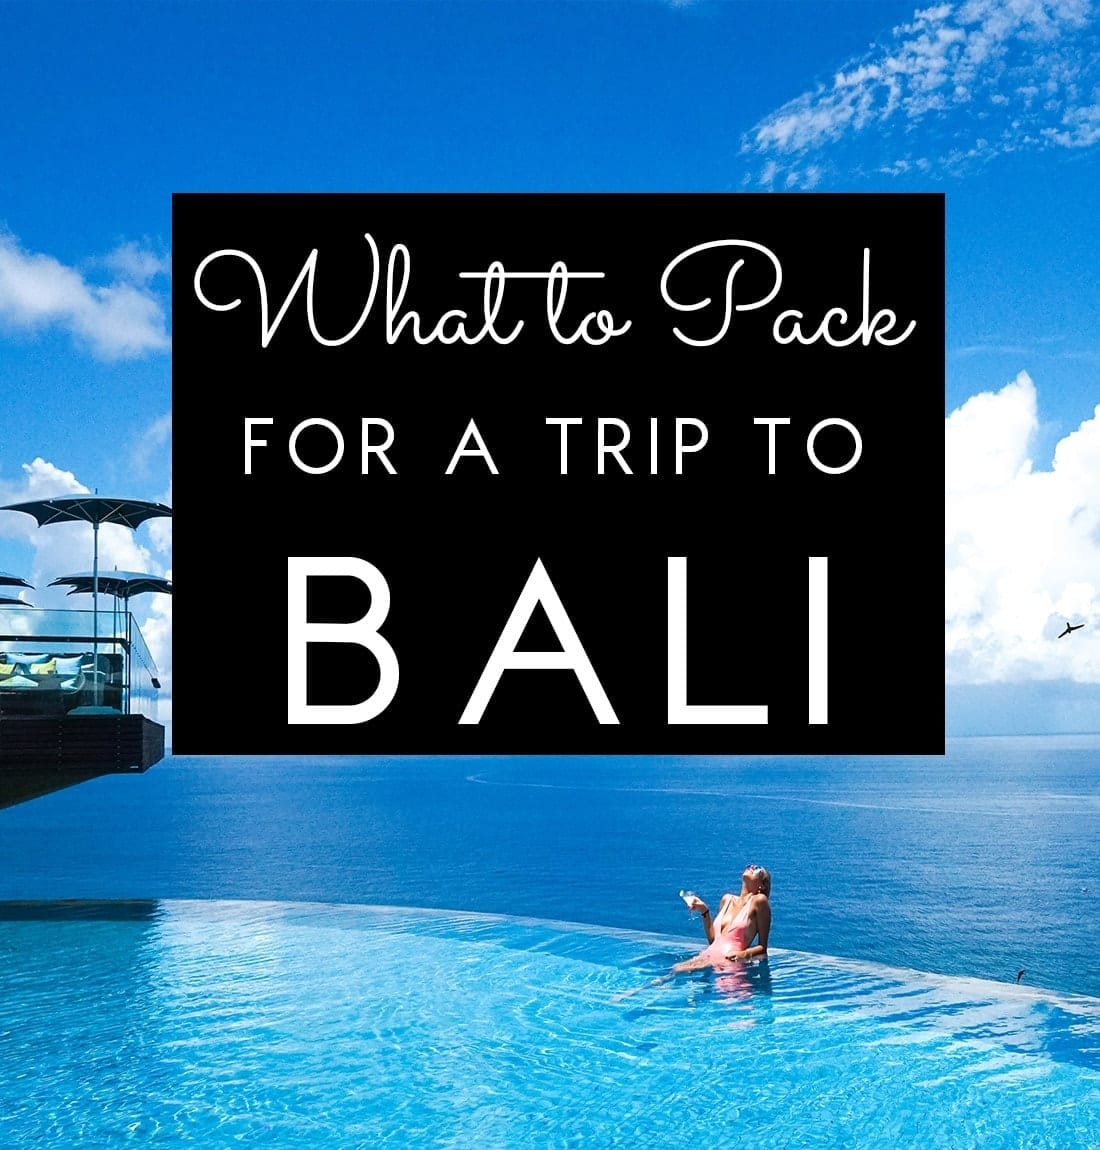 images?q=tbn:ANd9GcQh_l3eQ5xwiPy07kGEXjmjgmBKBRB7H2mRxCGhv1tFWg5c_mWT Great Secret Vacation In Bali In February Place @capturingmomentsphotography.net